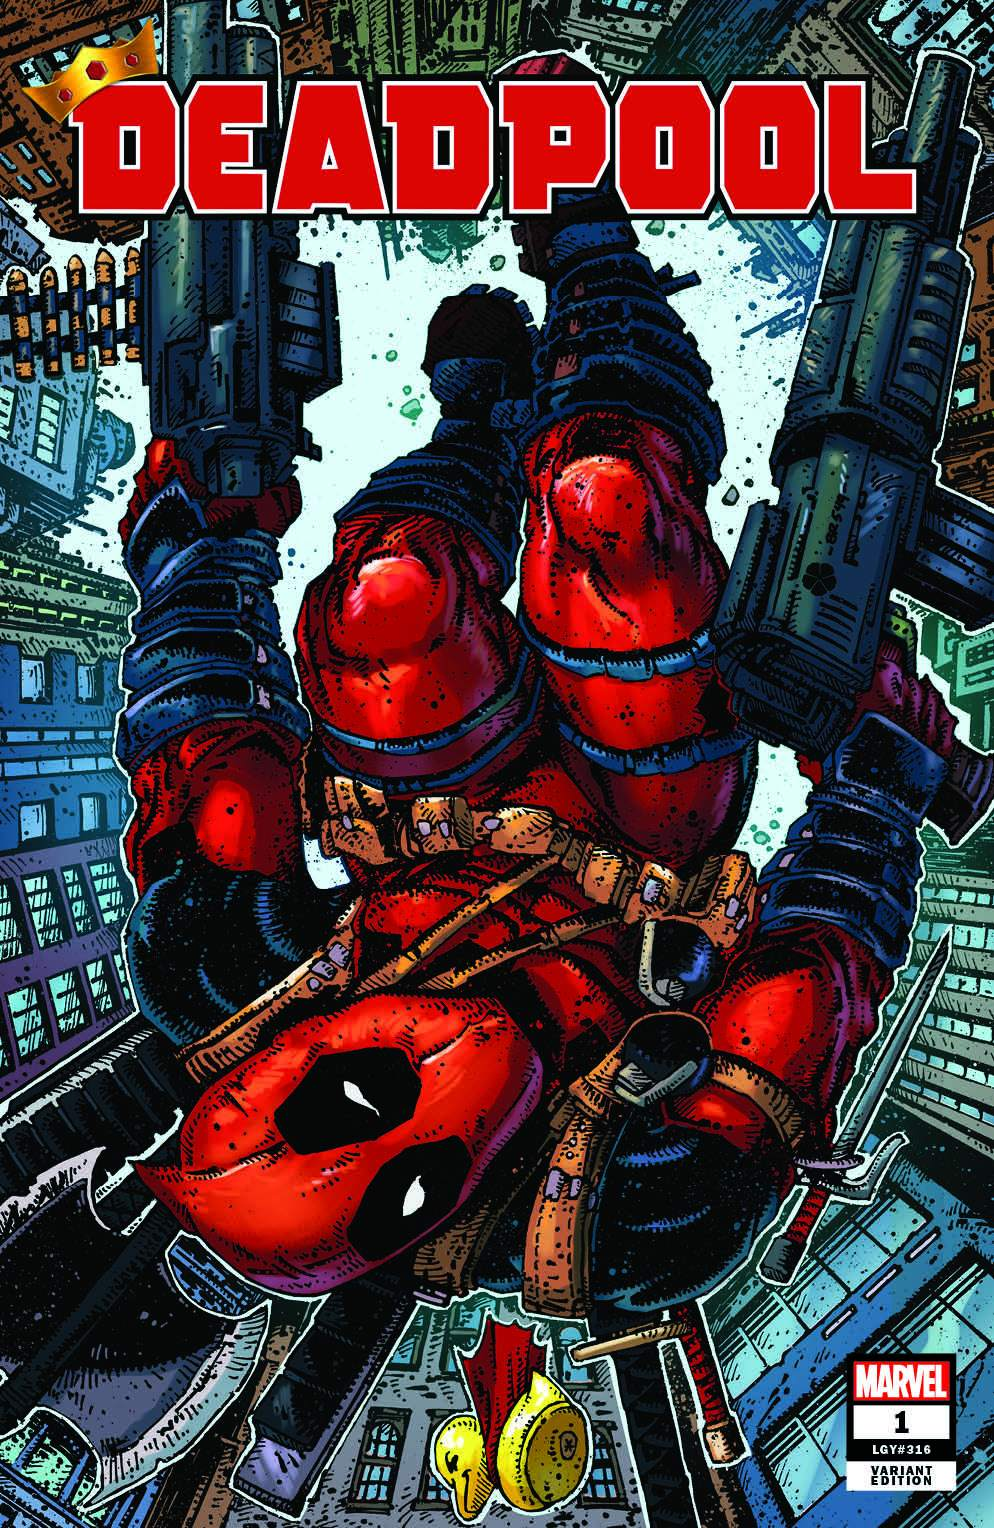 Deadpool is now available from Clover Press